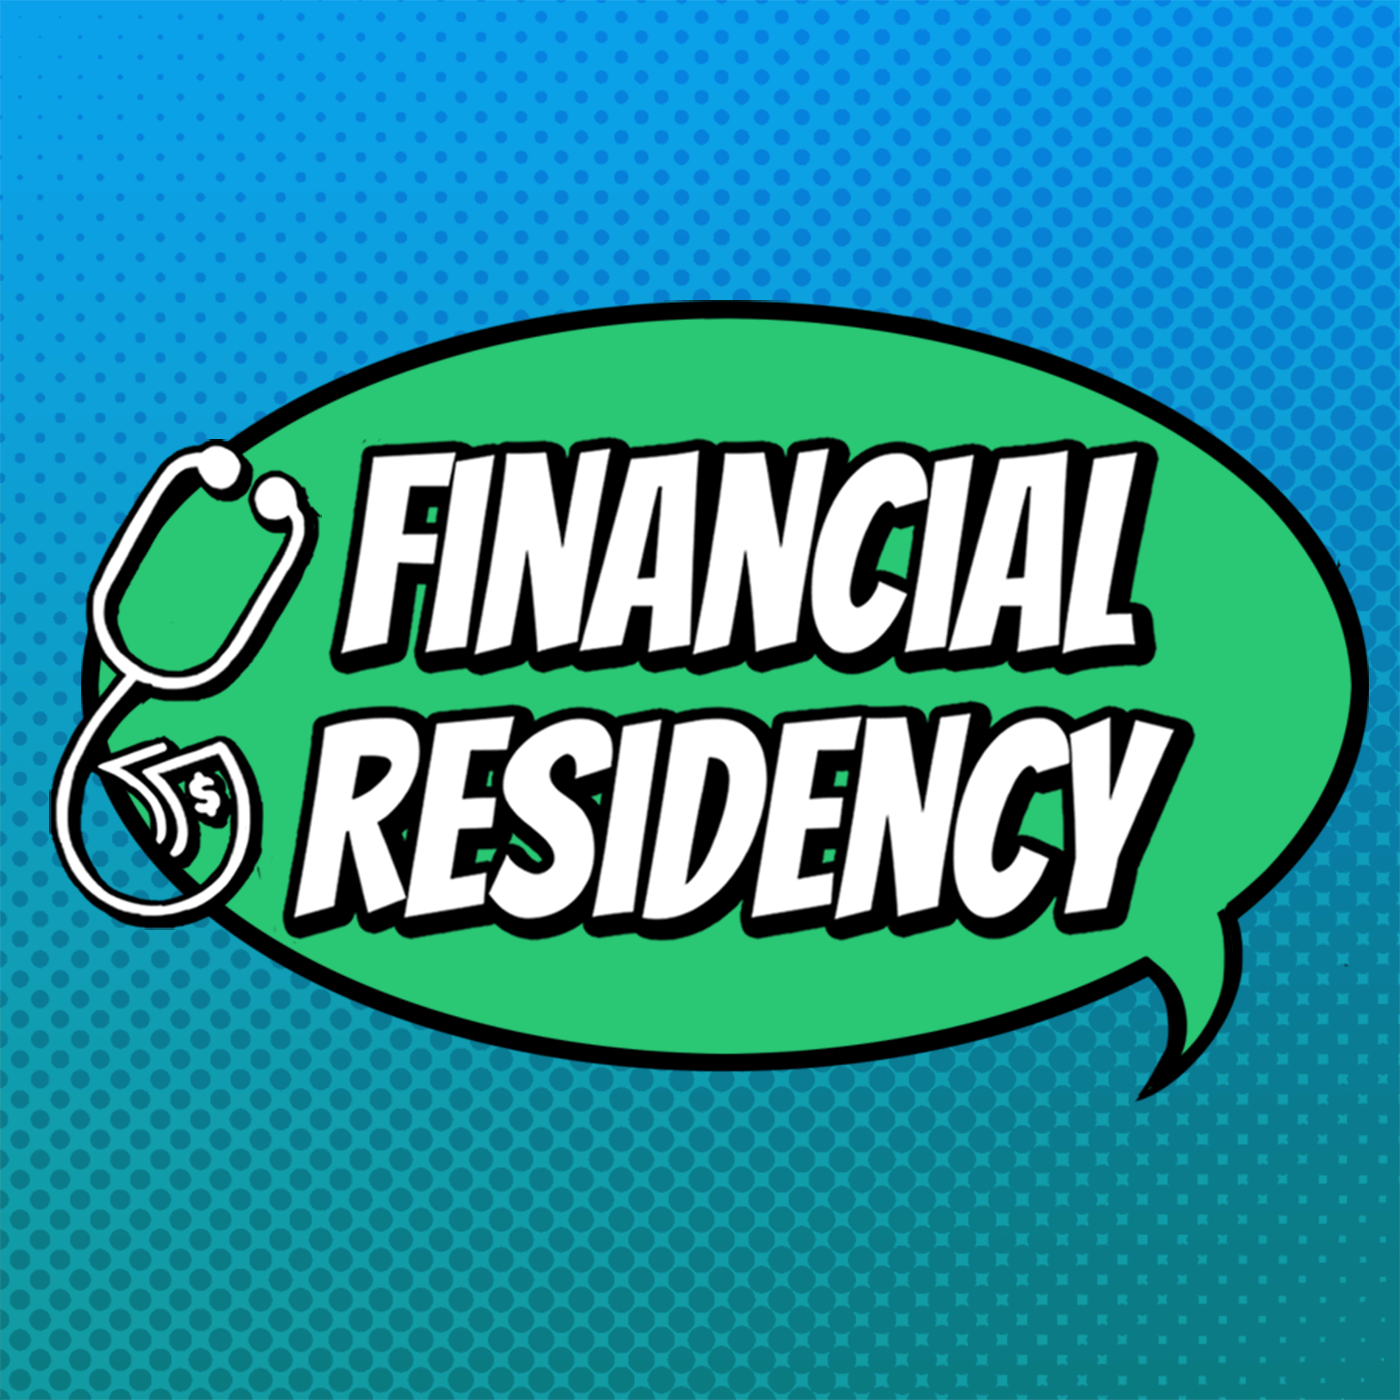 Financial Residency